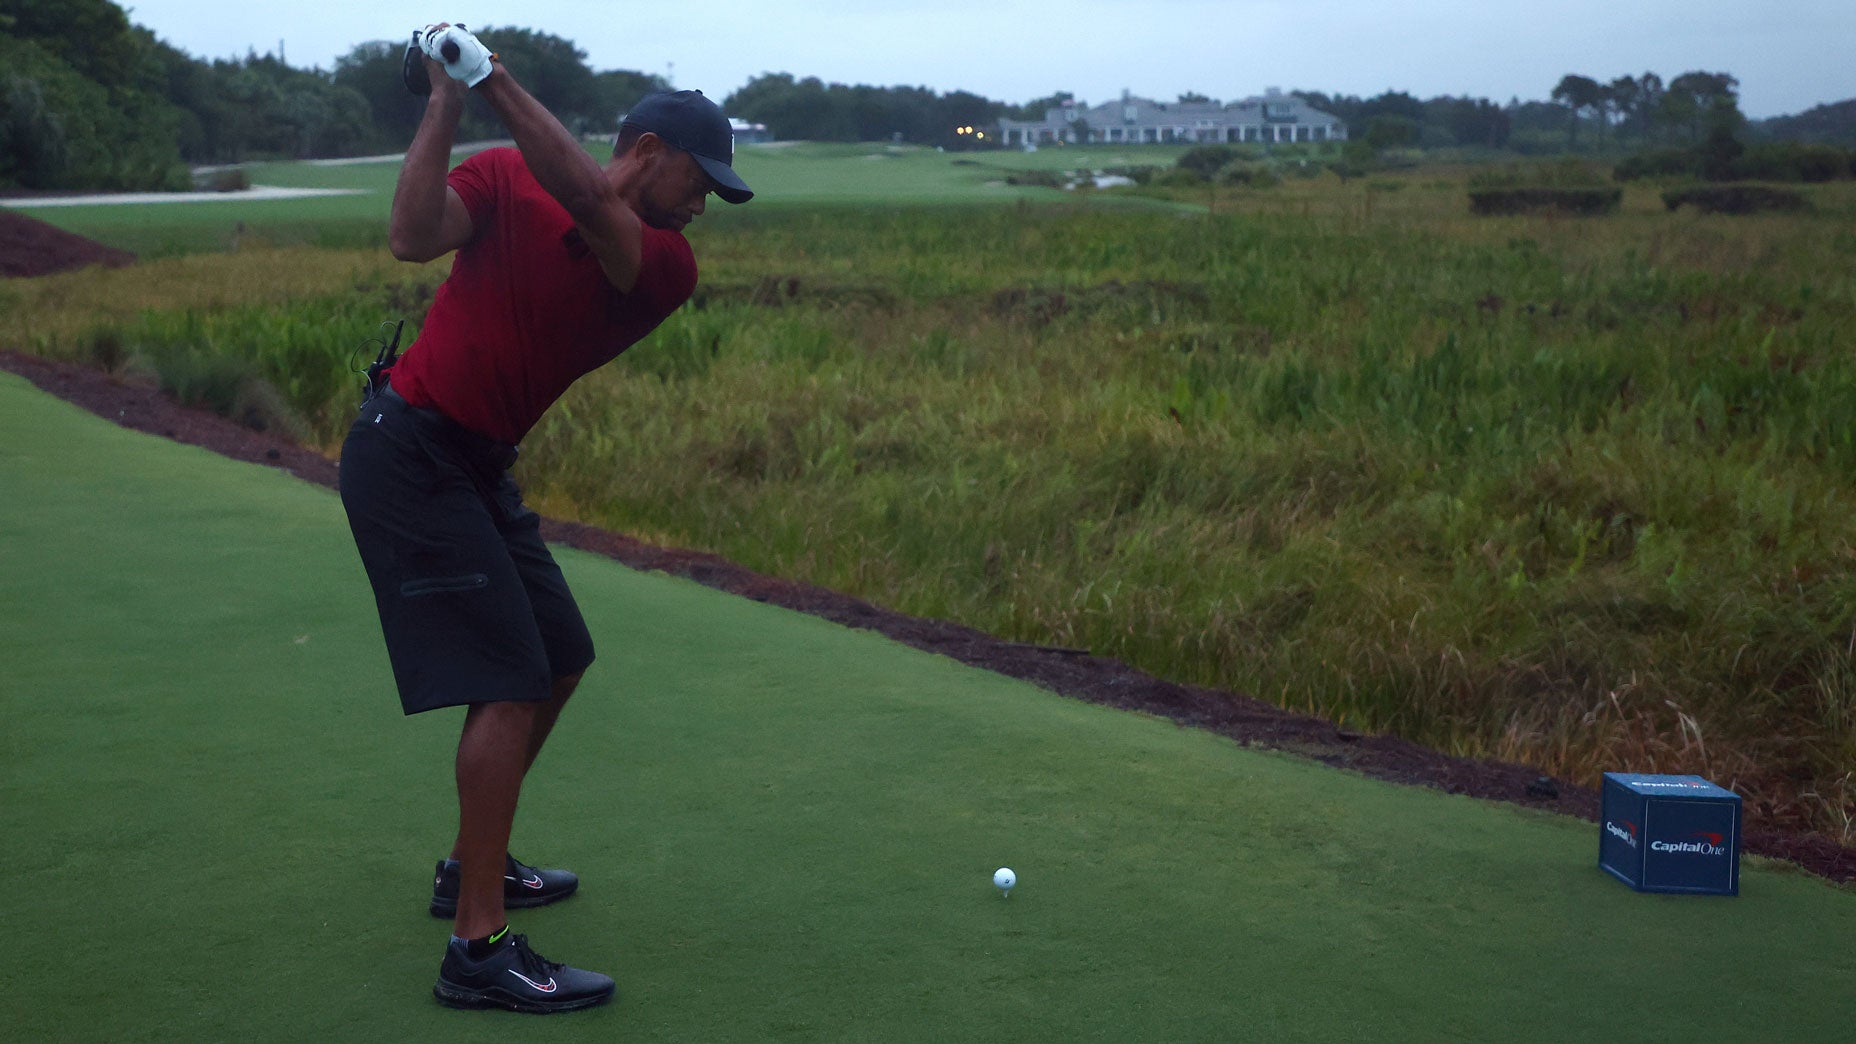 Tiger Woods hits his tee shot on the 18th hole at Medalist Golf Club.